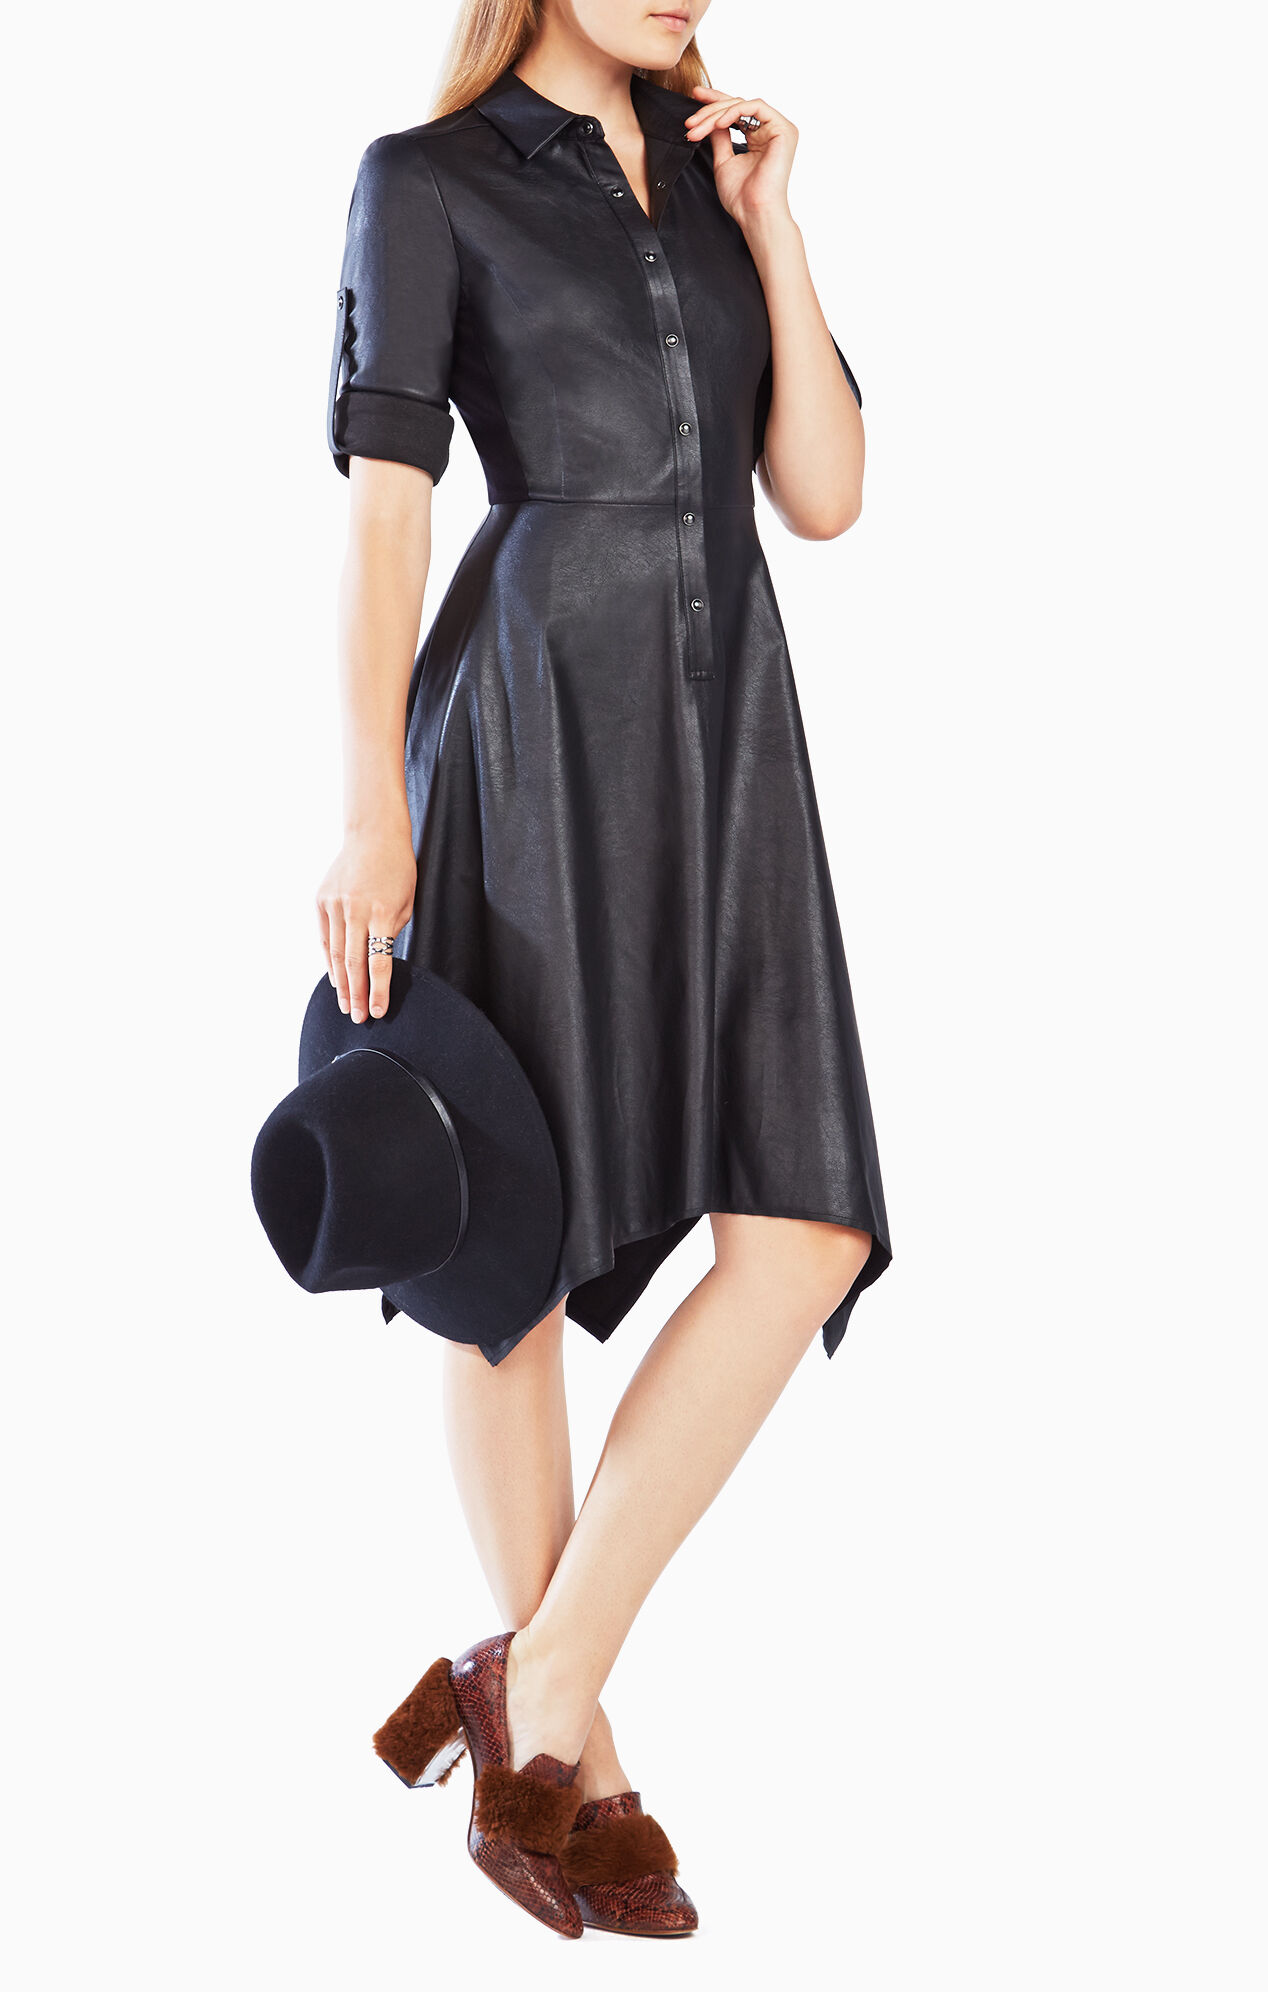 Beatryce Faux Leather Dress